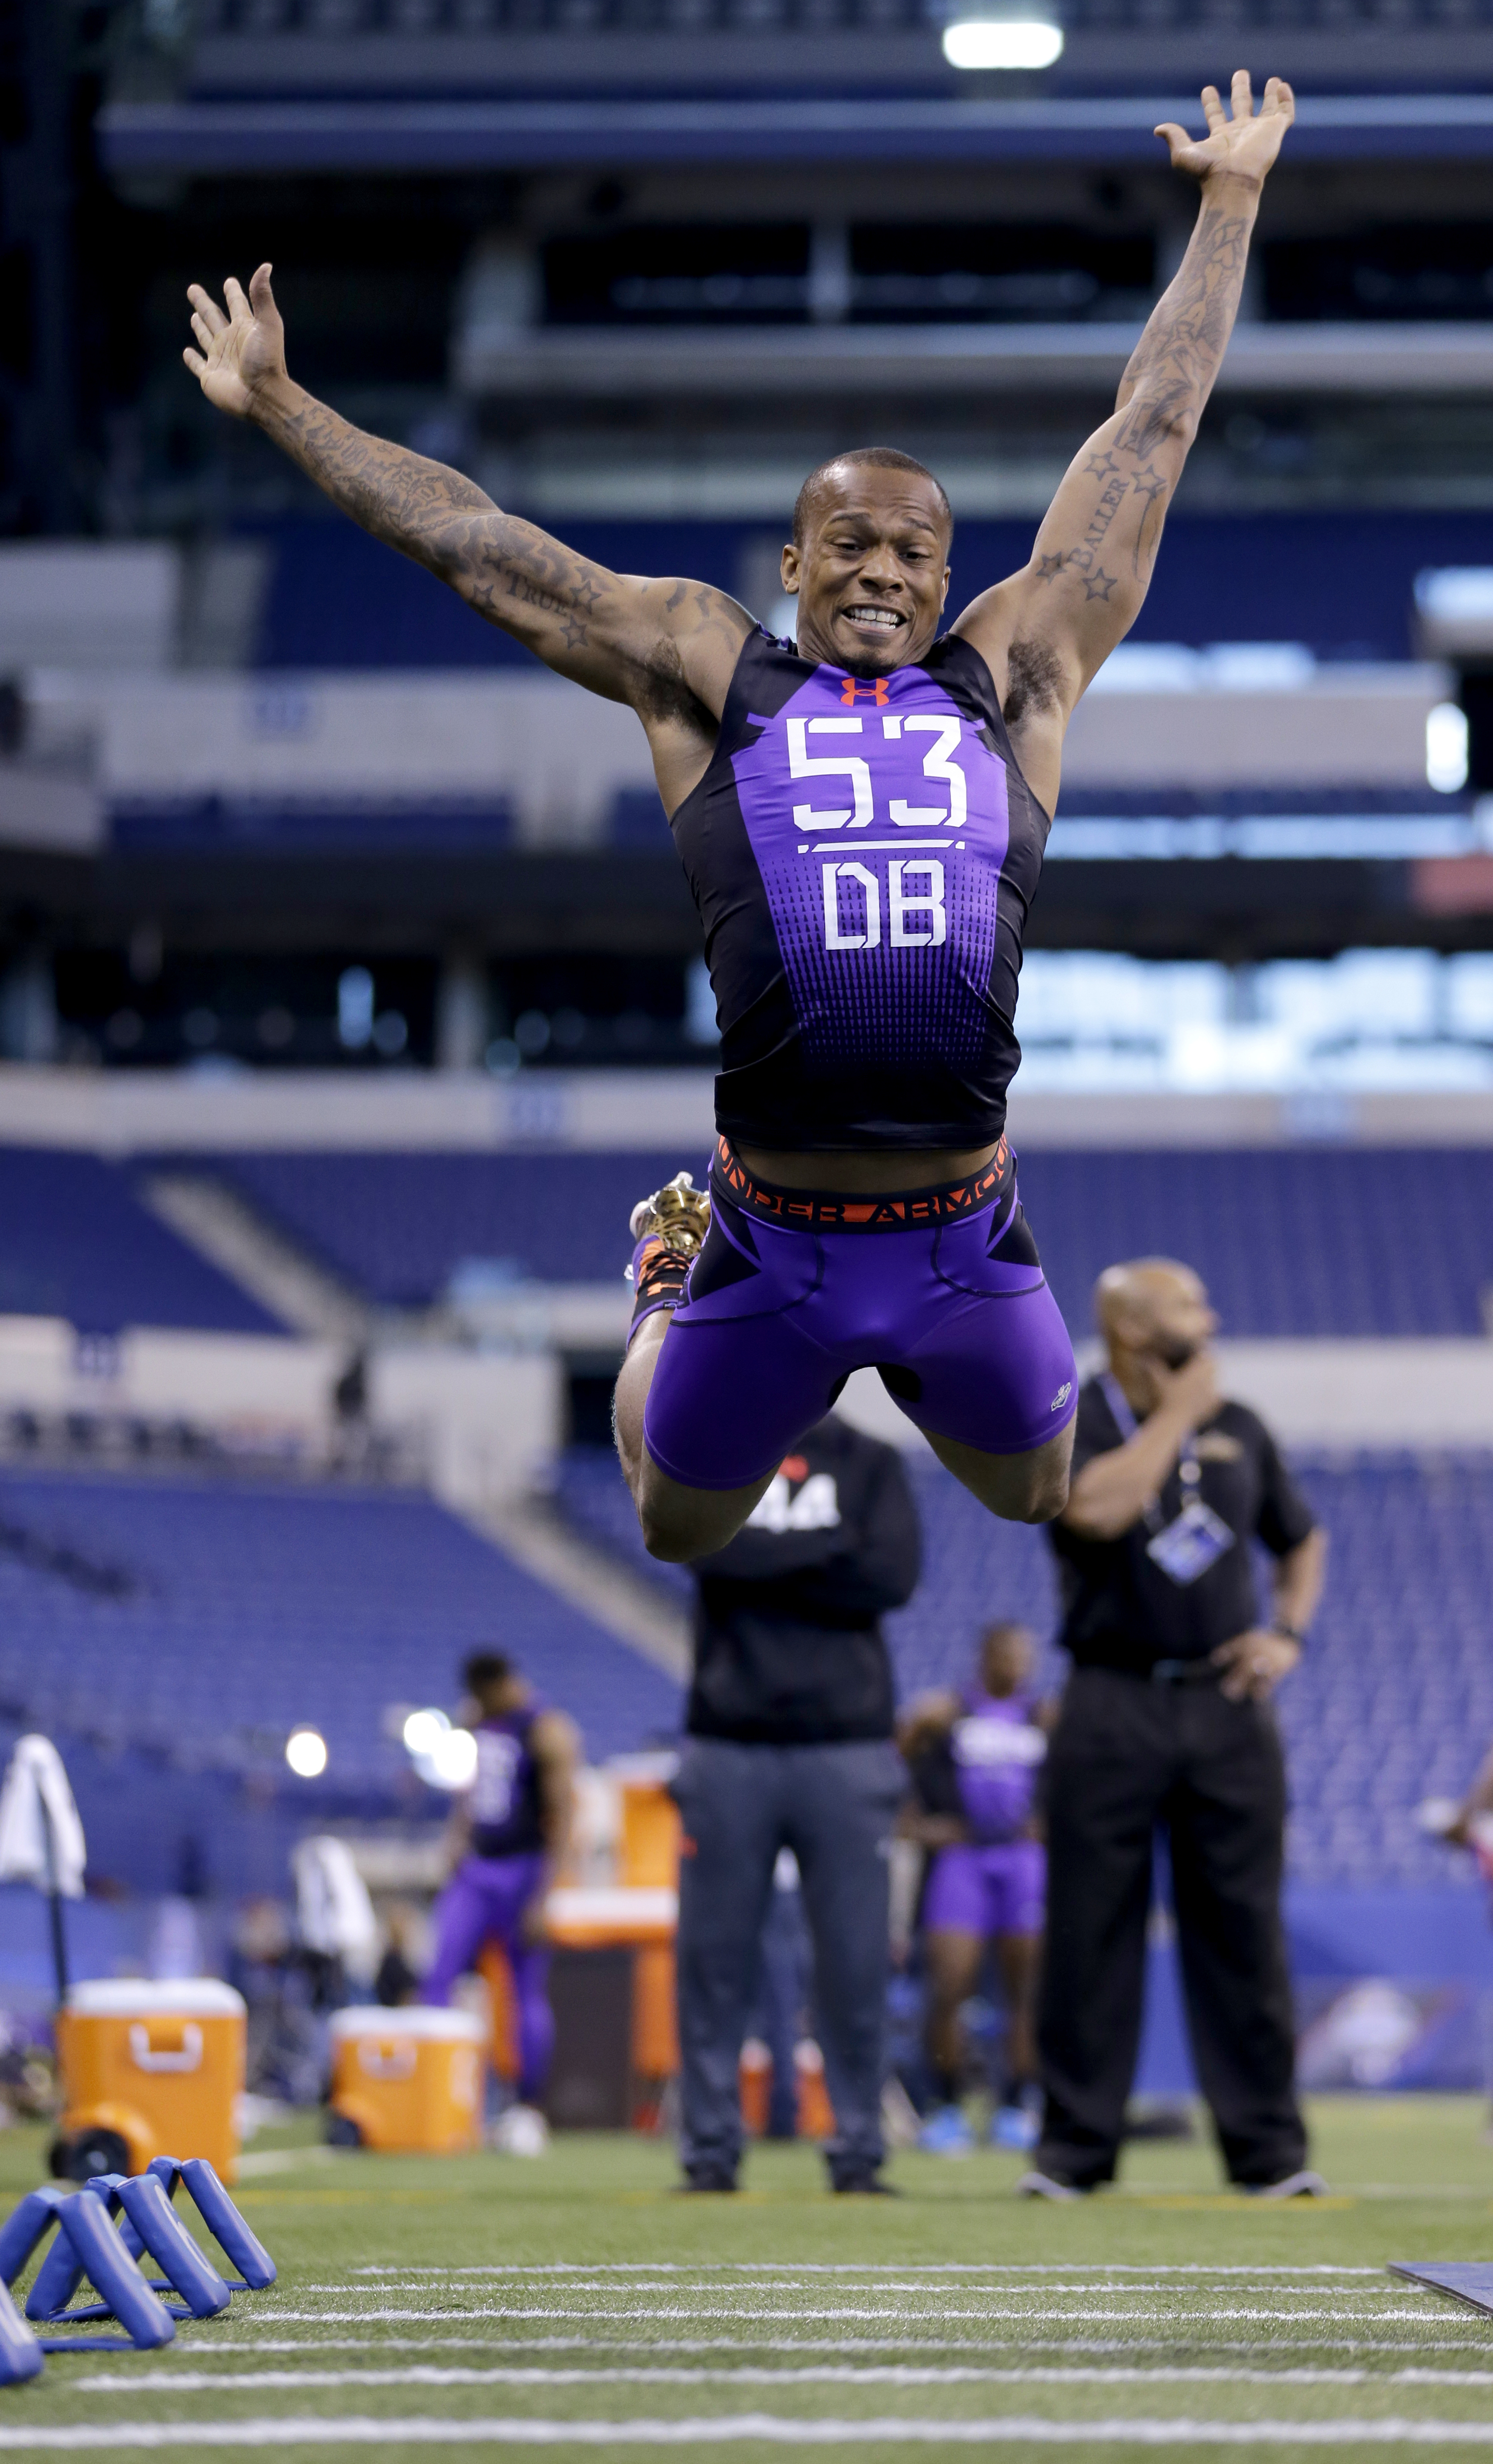 Florida State defensive back P.J. Williams runs a drill at the NFL football scouting combine in Indianapolis, Monday, Feb. 23, 2015. (AP Photo/Julio Cortez)